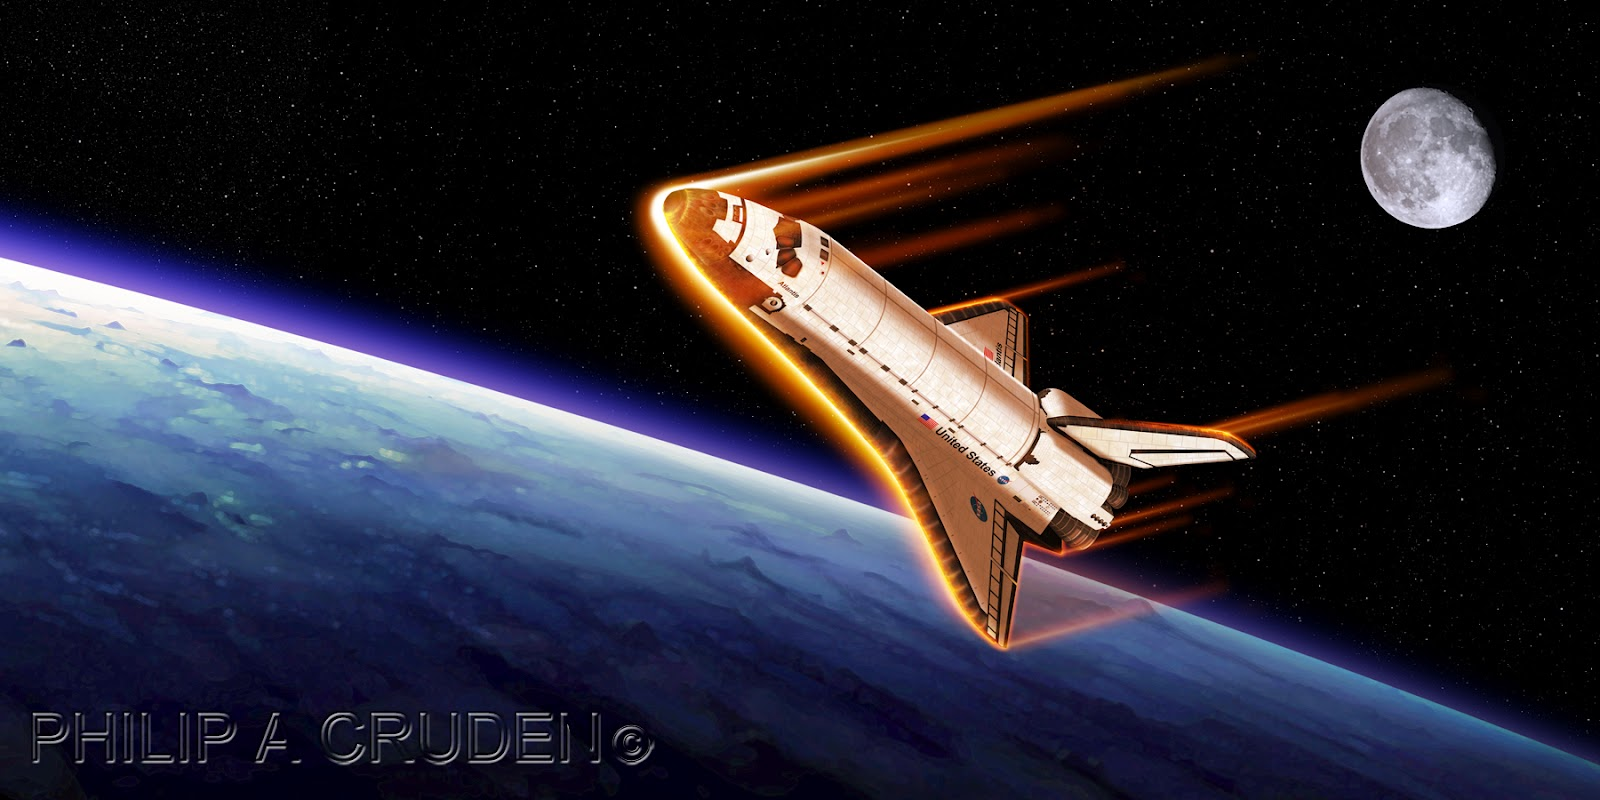 space shuttle re entry heat - photo #15